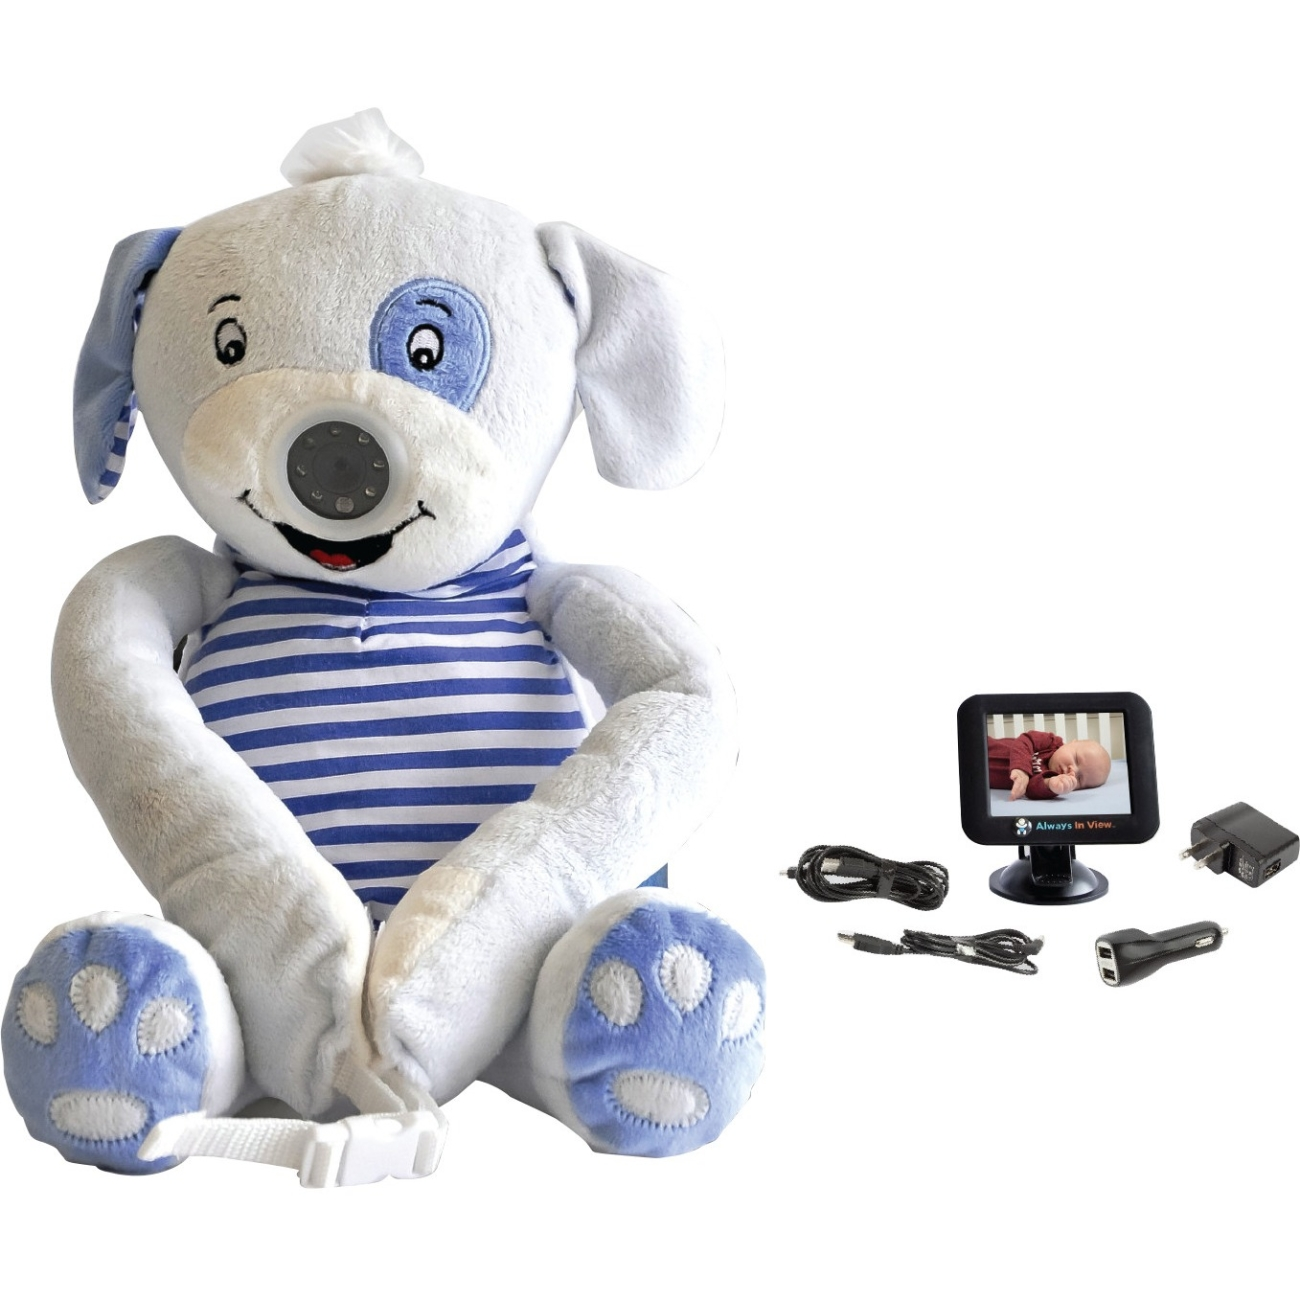 Always In View Baby Monitor For Cars, Pu